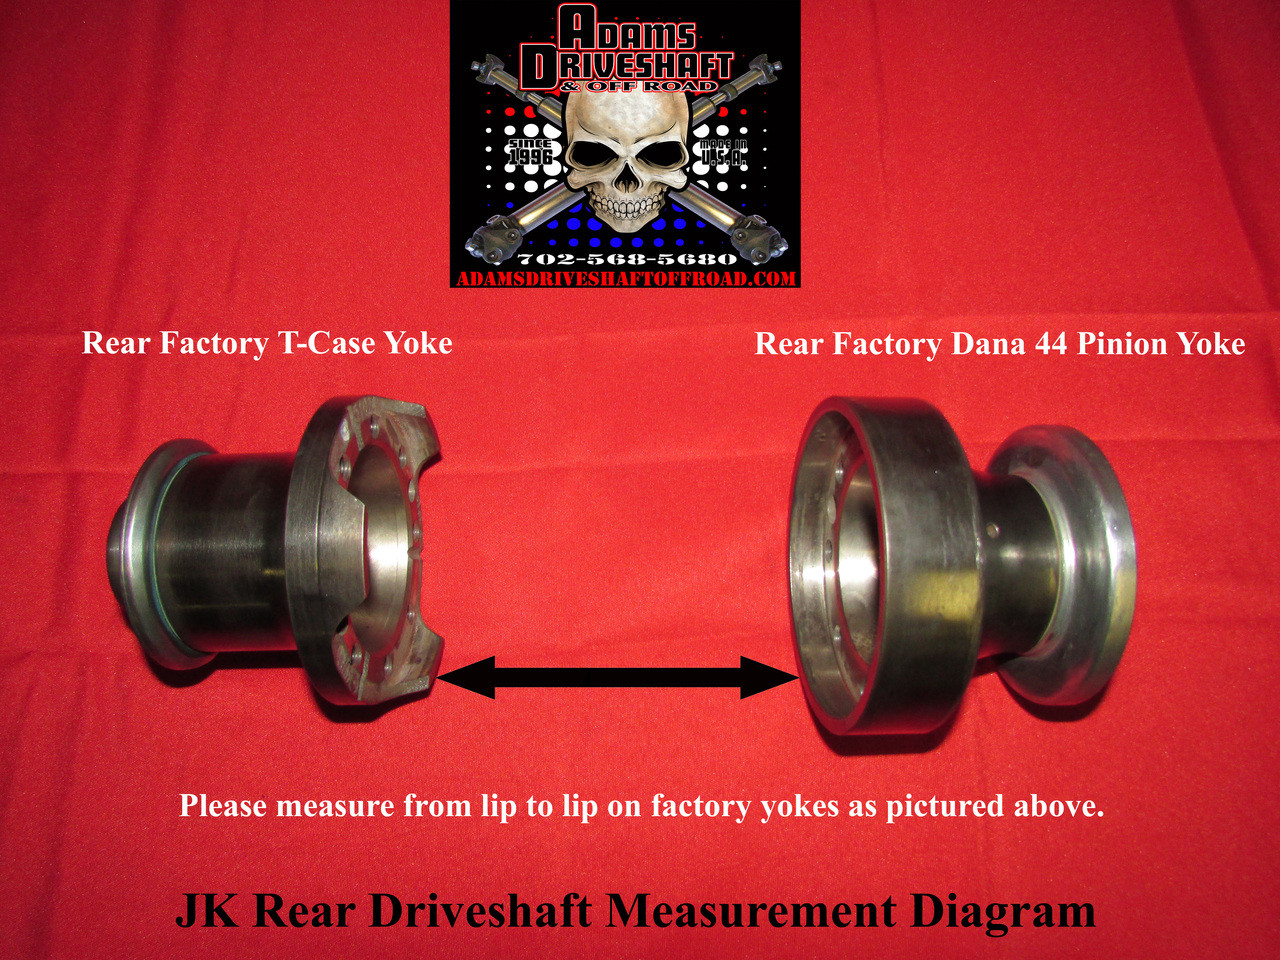 Measurement required prior to ordering rear driveshaft